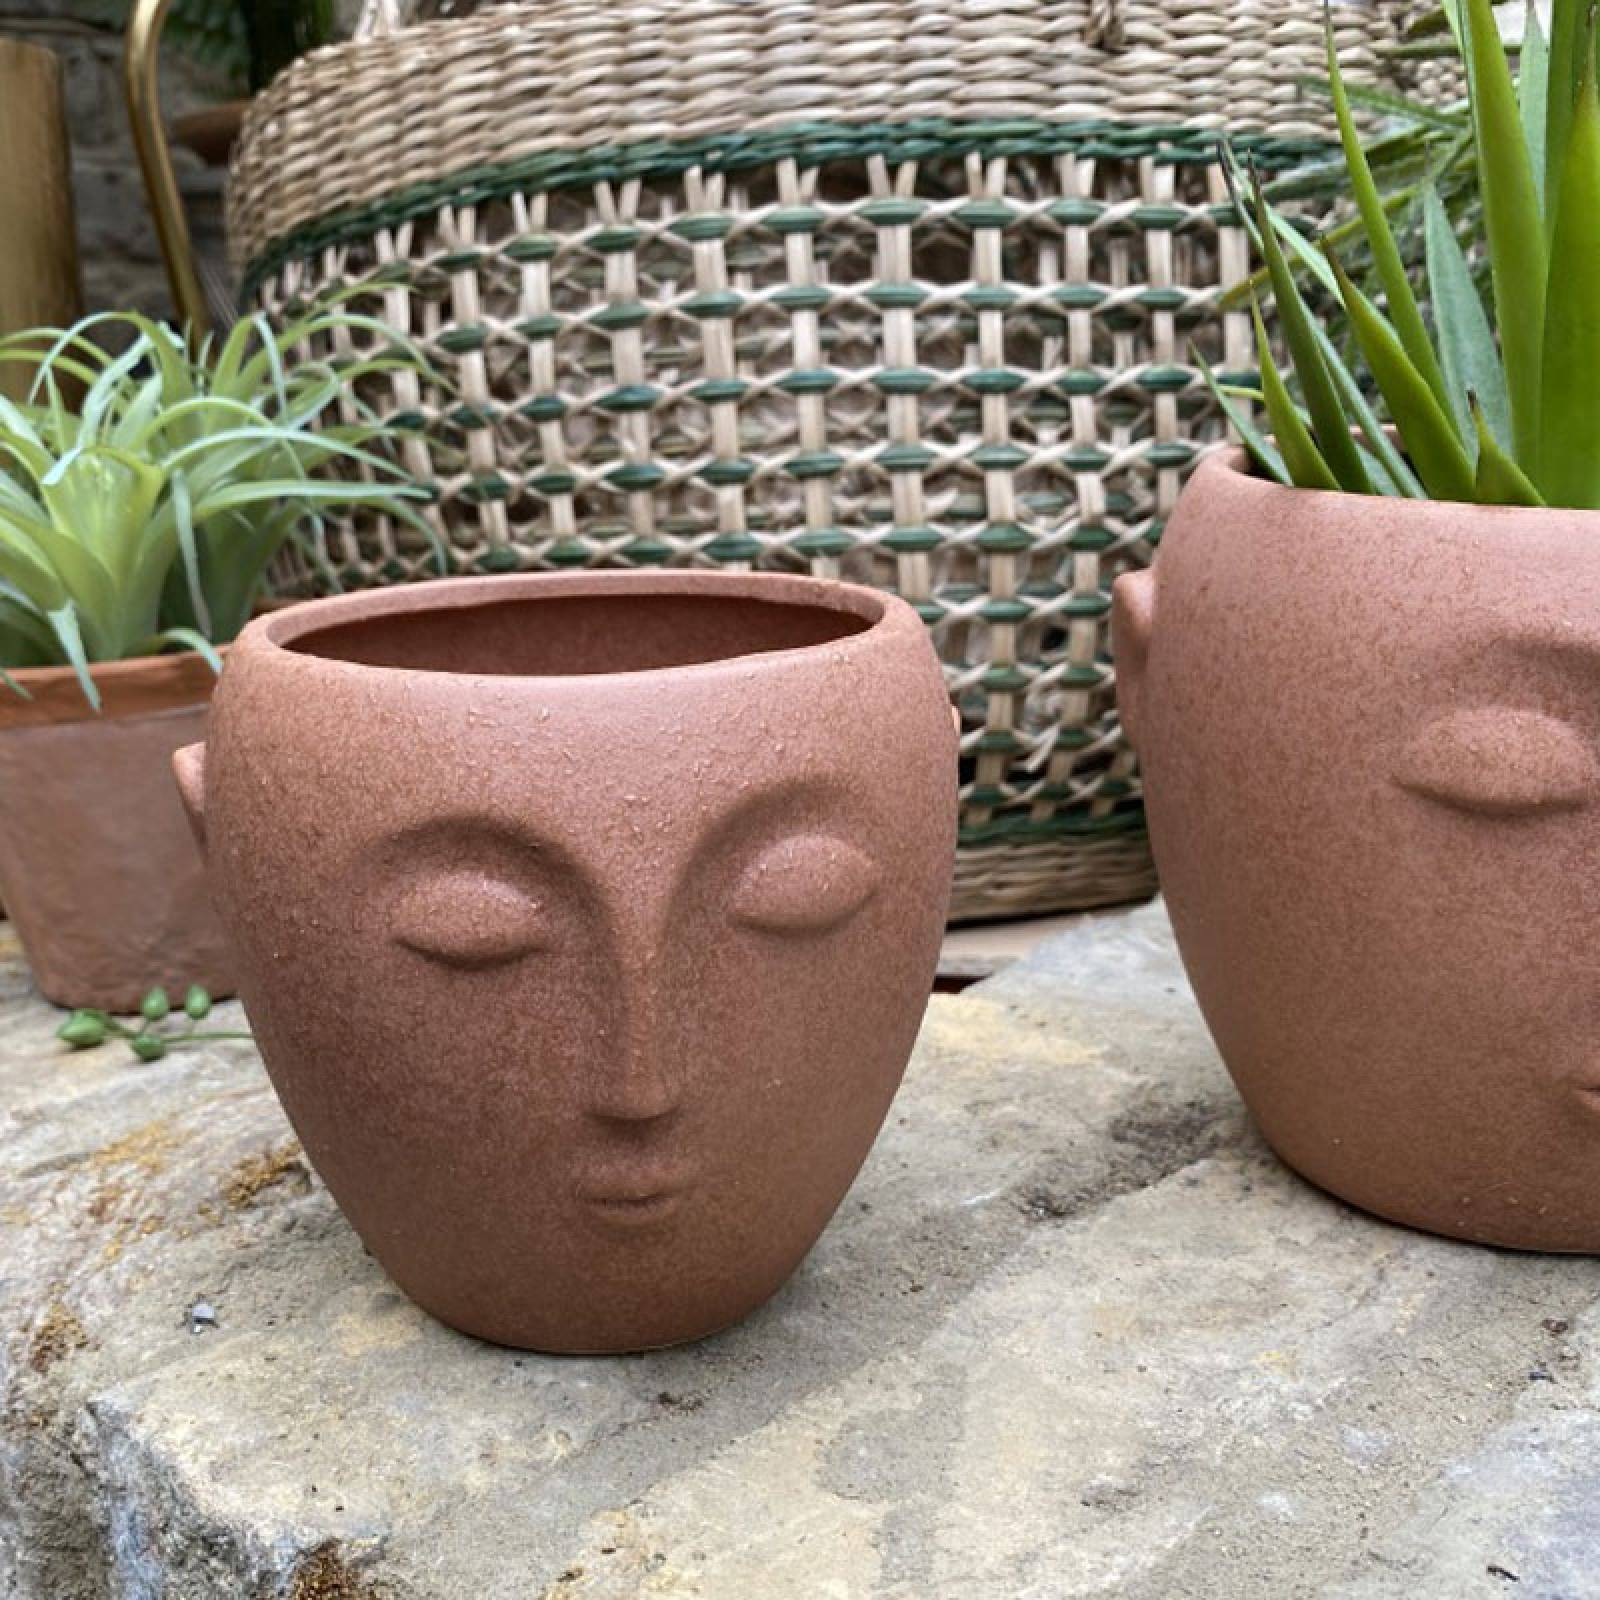 Small Terracotta Flower Pot With Face Imprint thumbnails